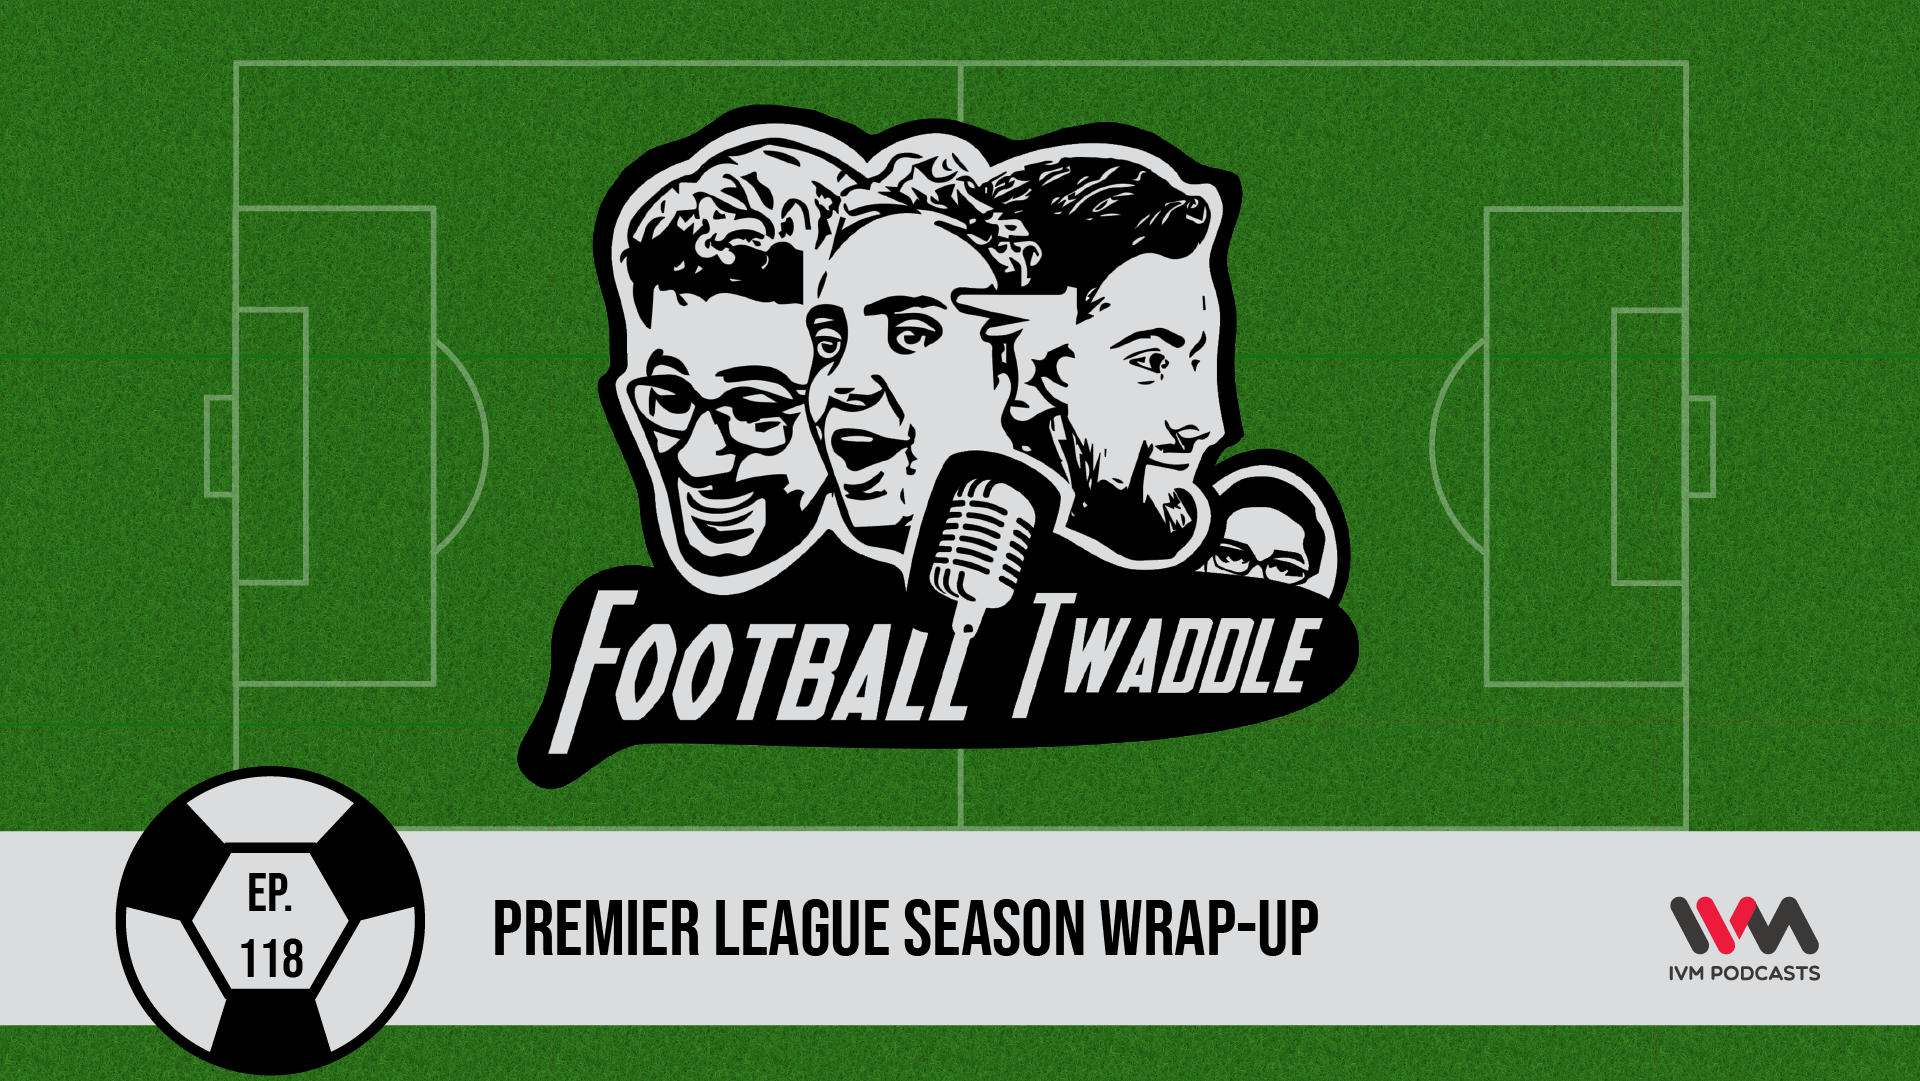 FootballTwaddleEpisode118.png